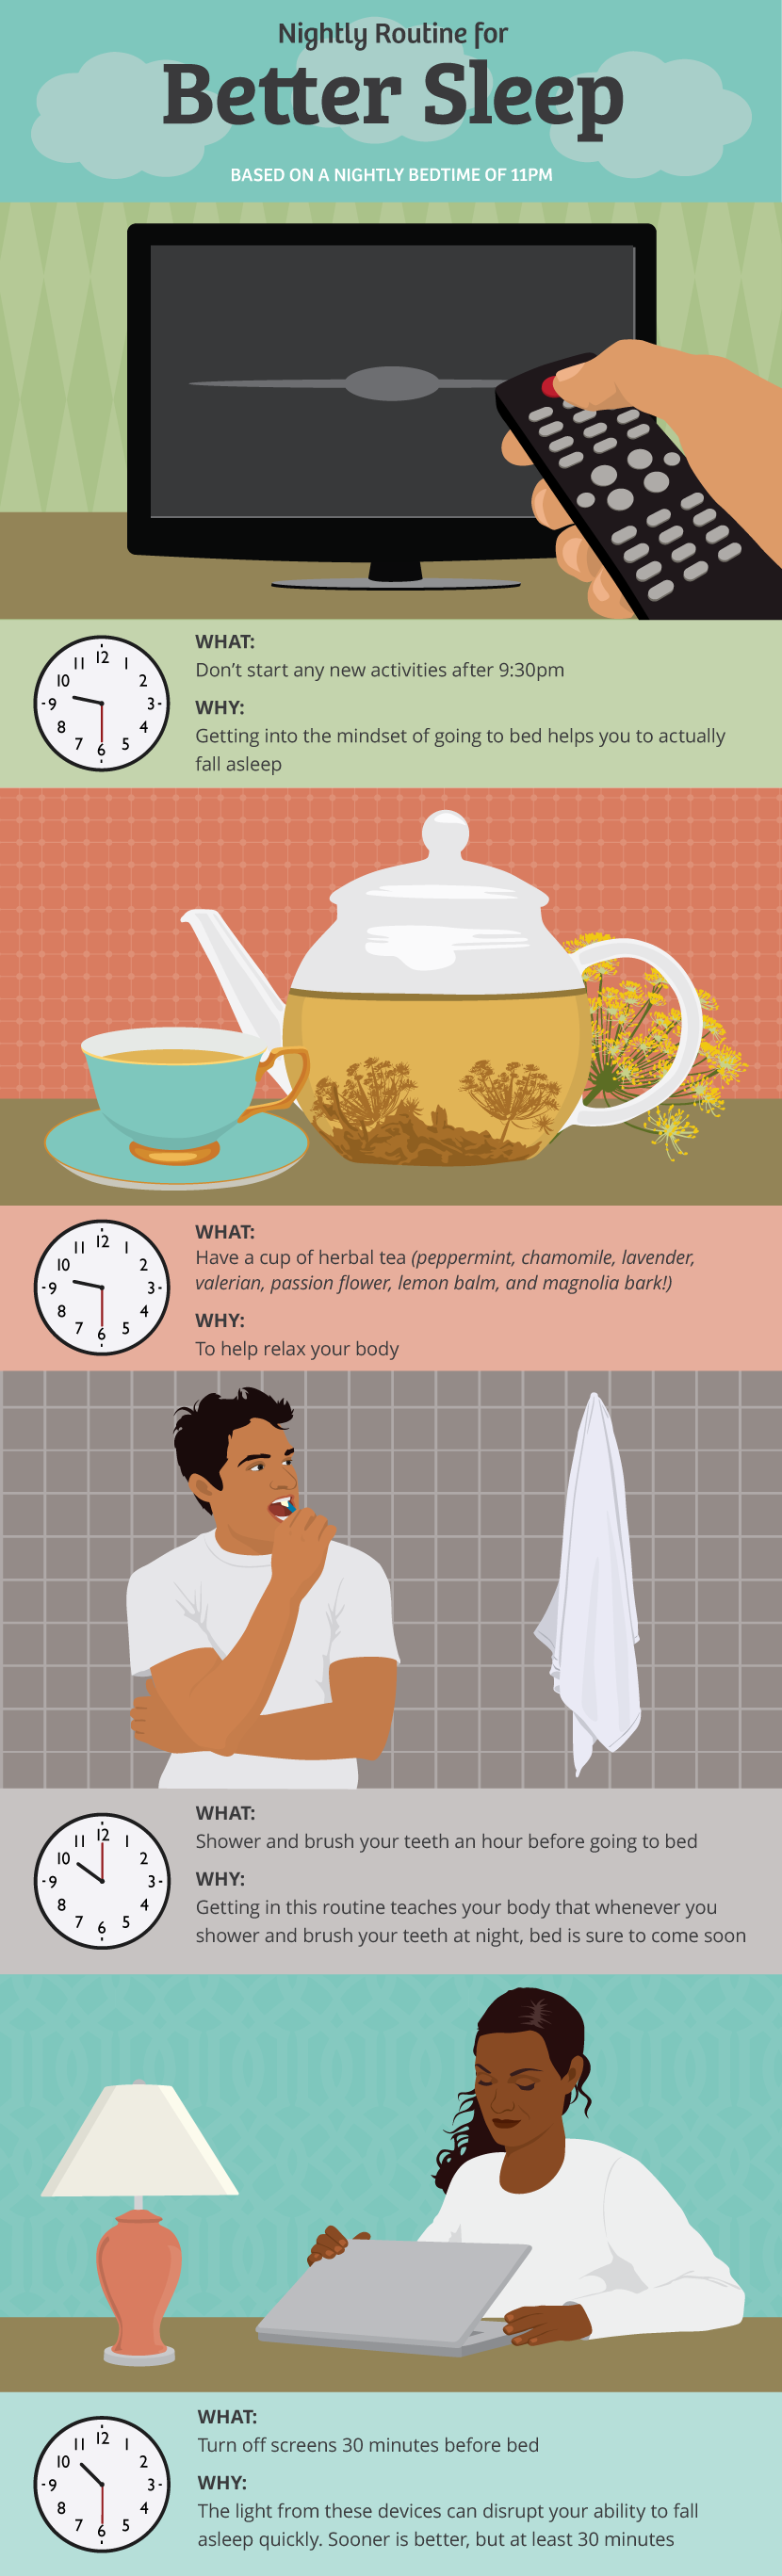 An infographic on the nightly routine for better sleep